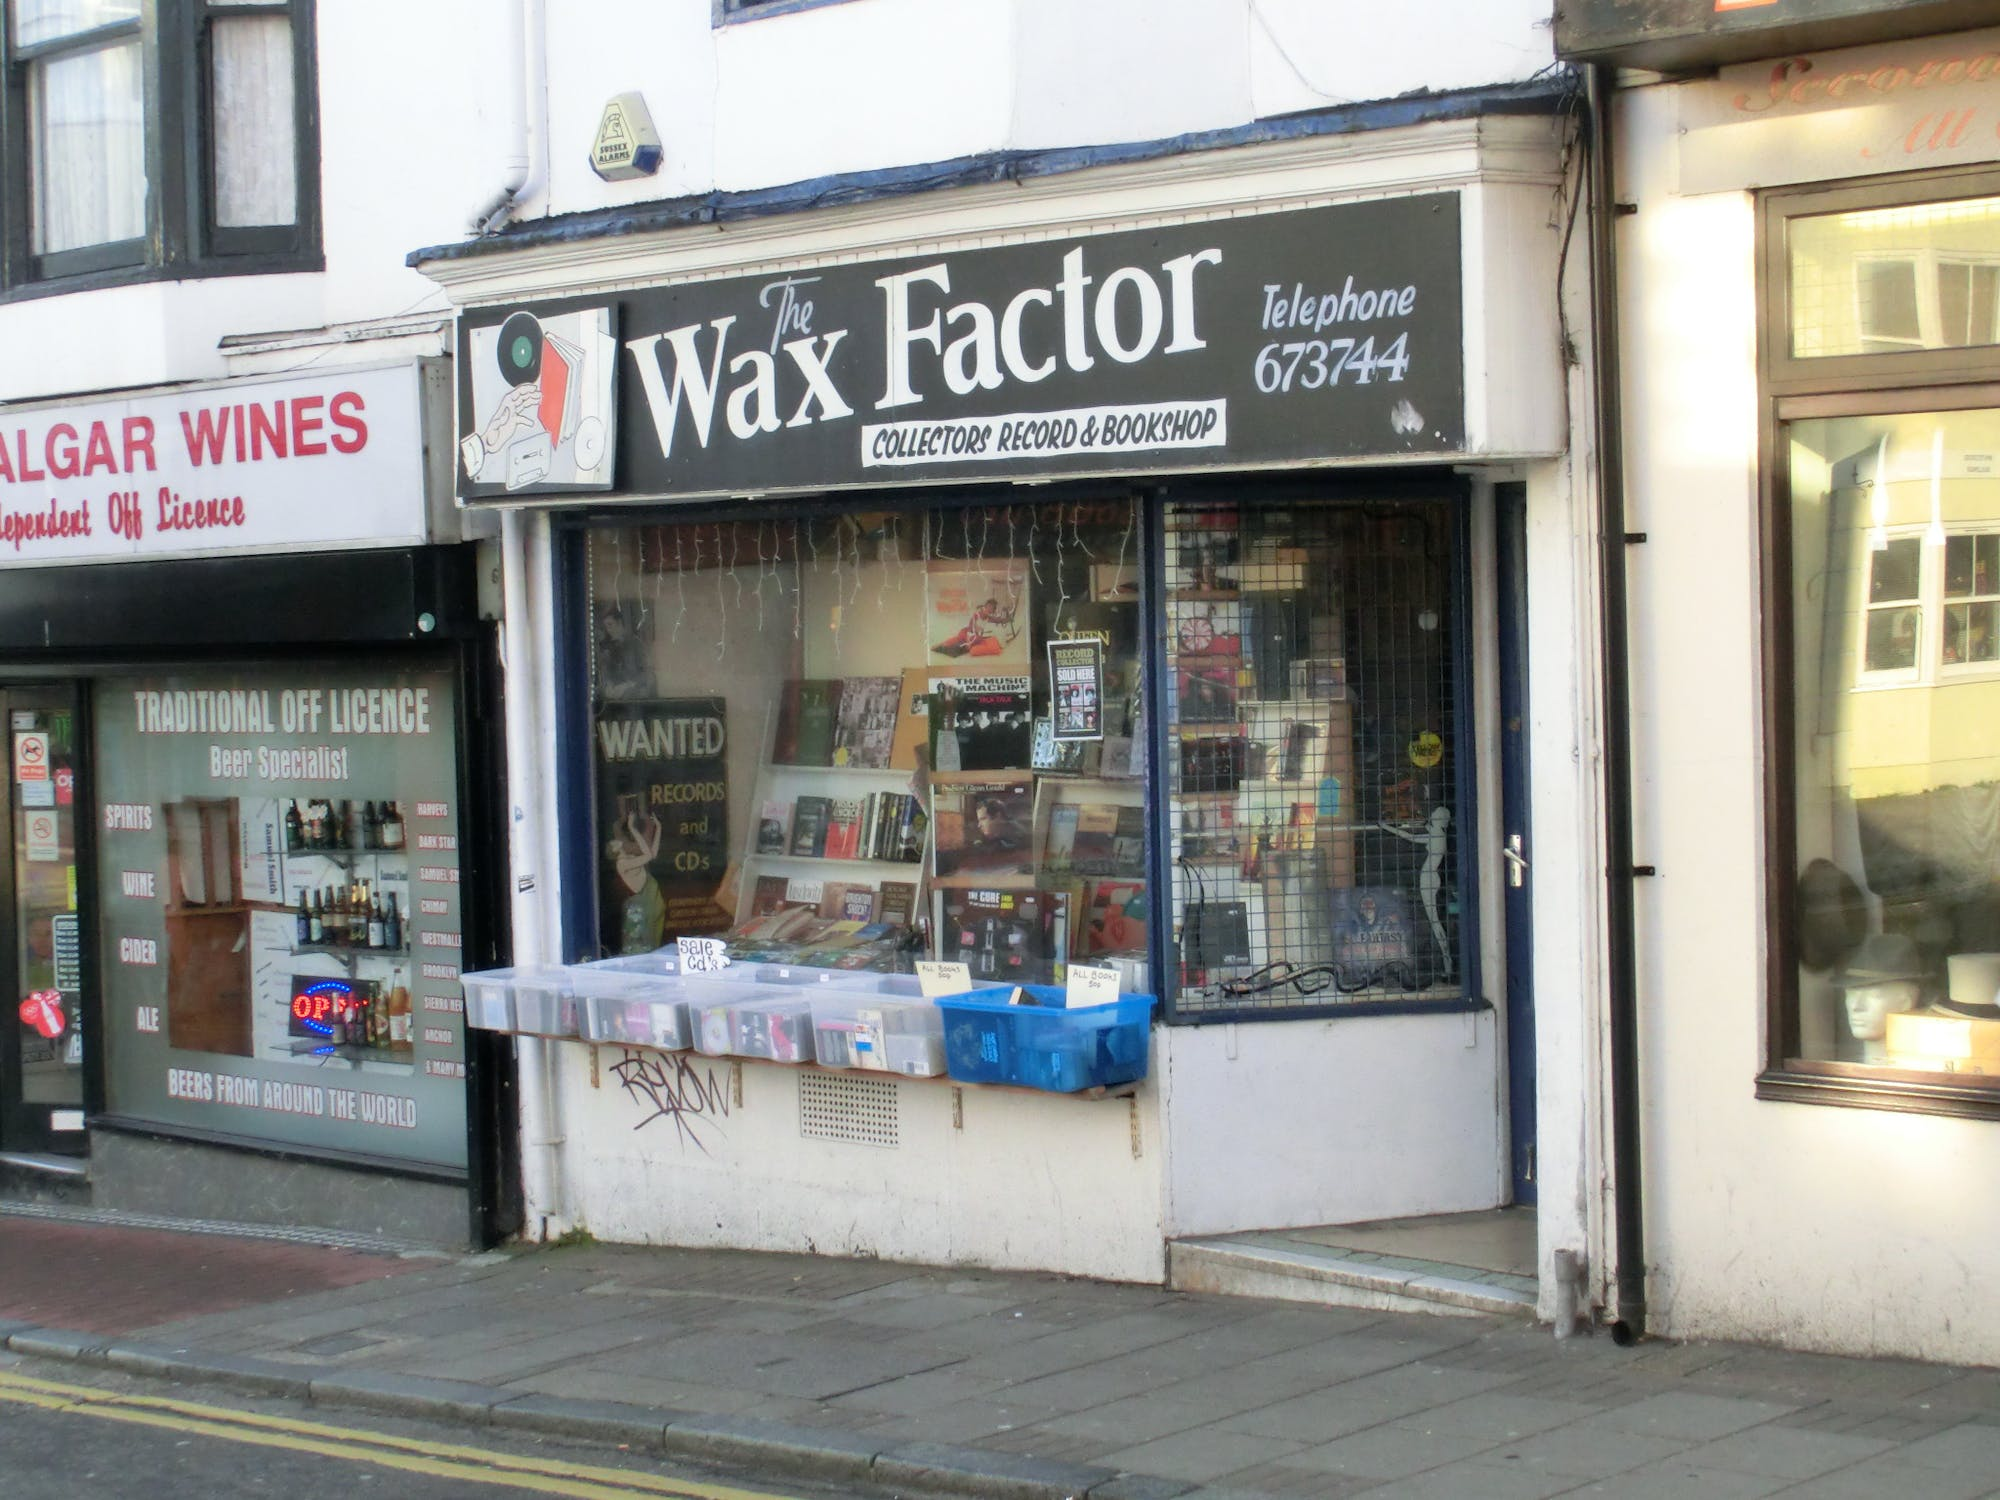 THE WAX FACTOR - Record Store Image